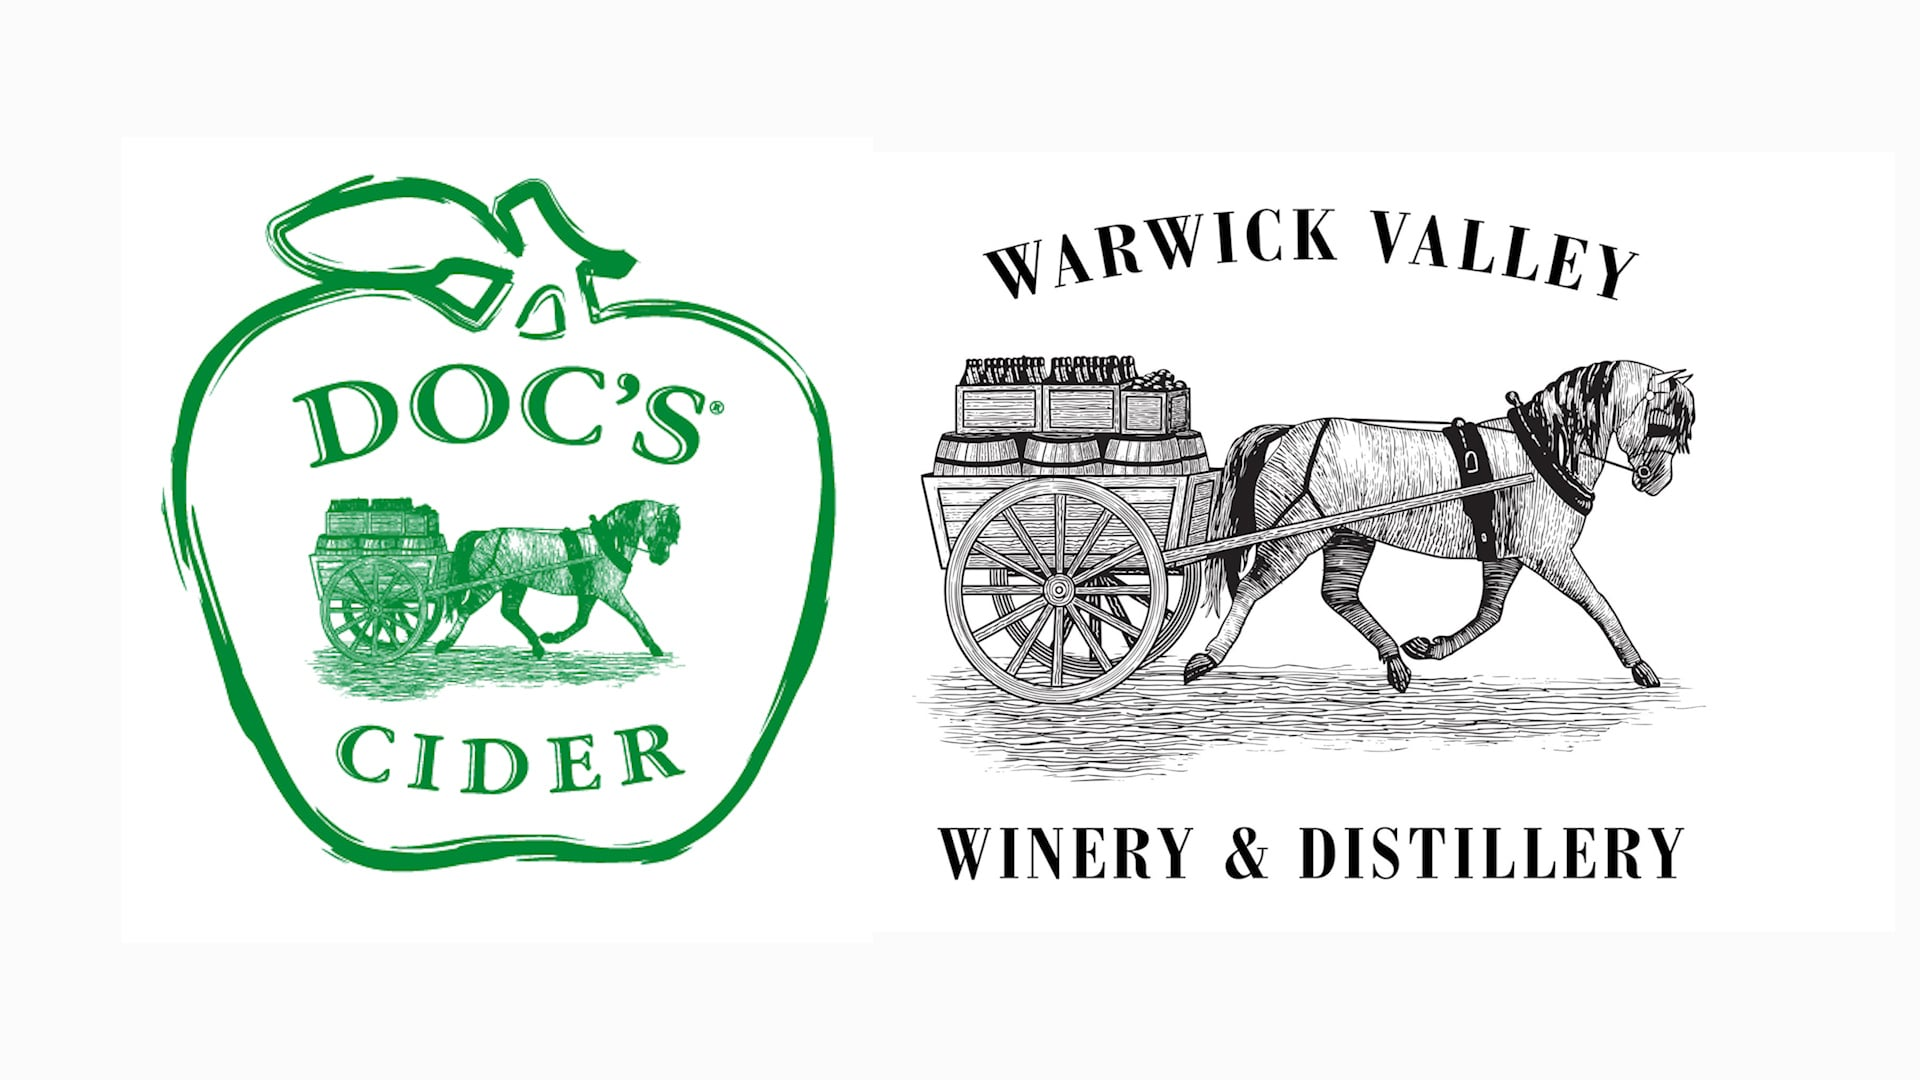 Warwick Valley Winery and Distillery Commercial